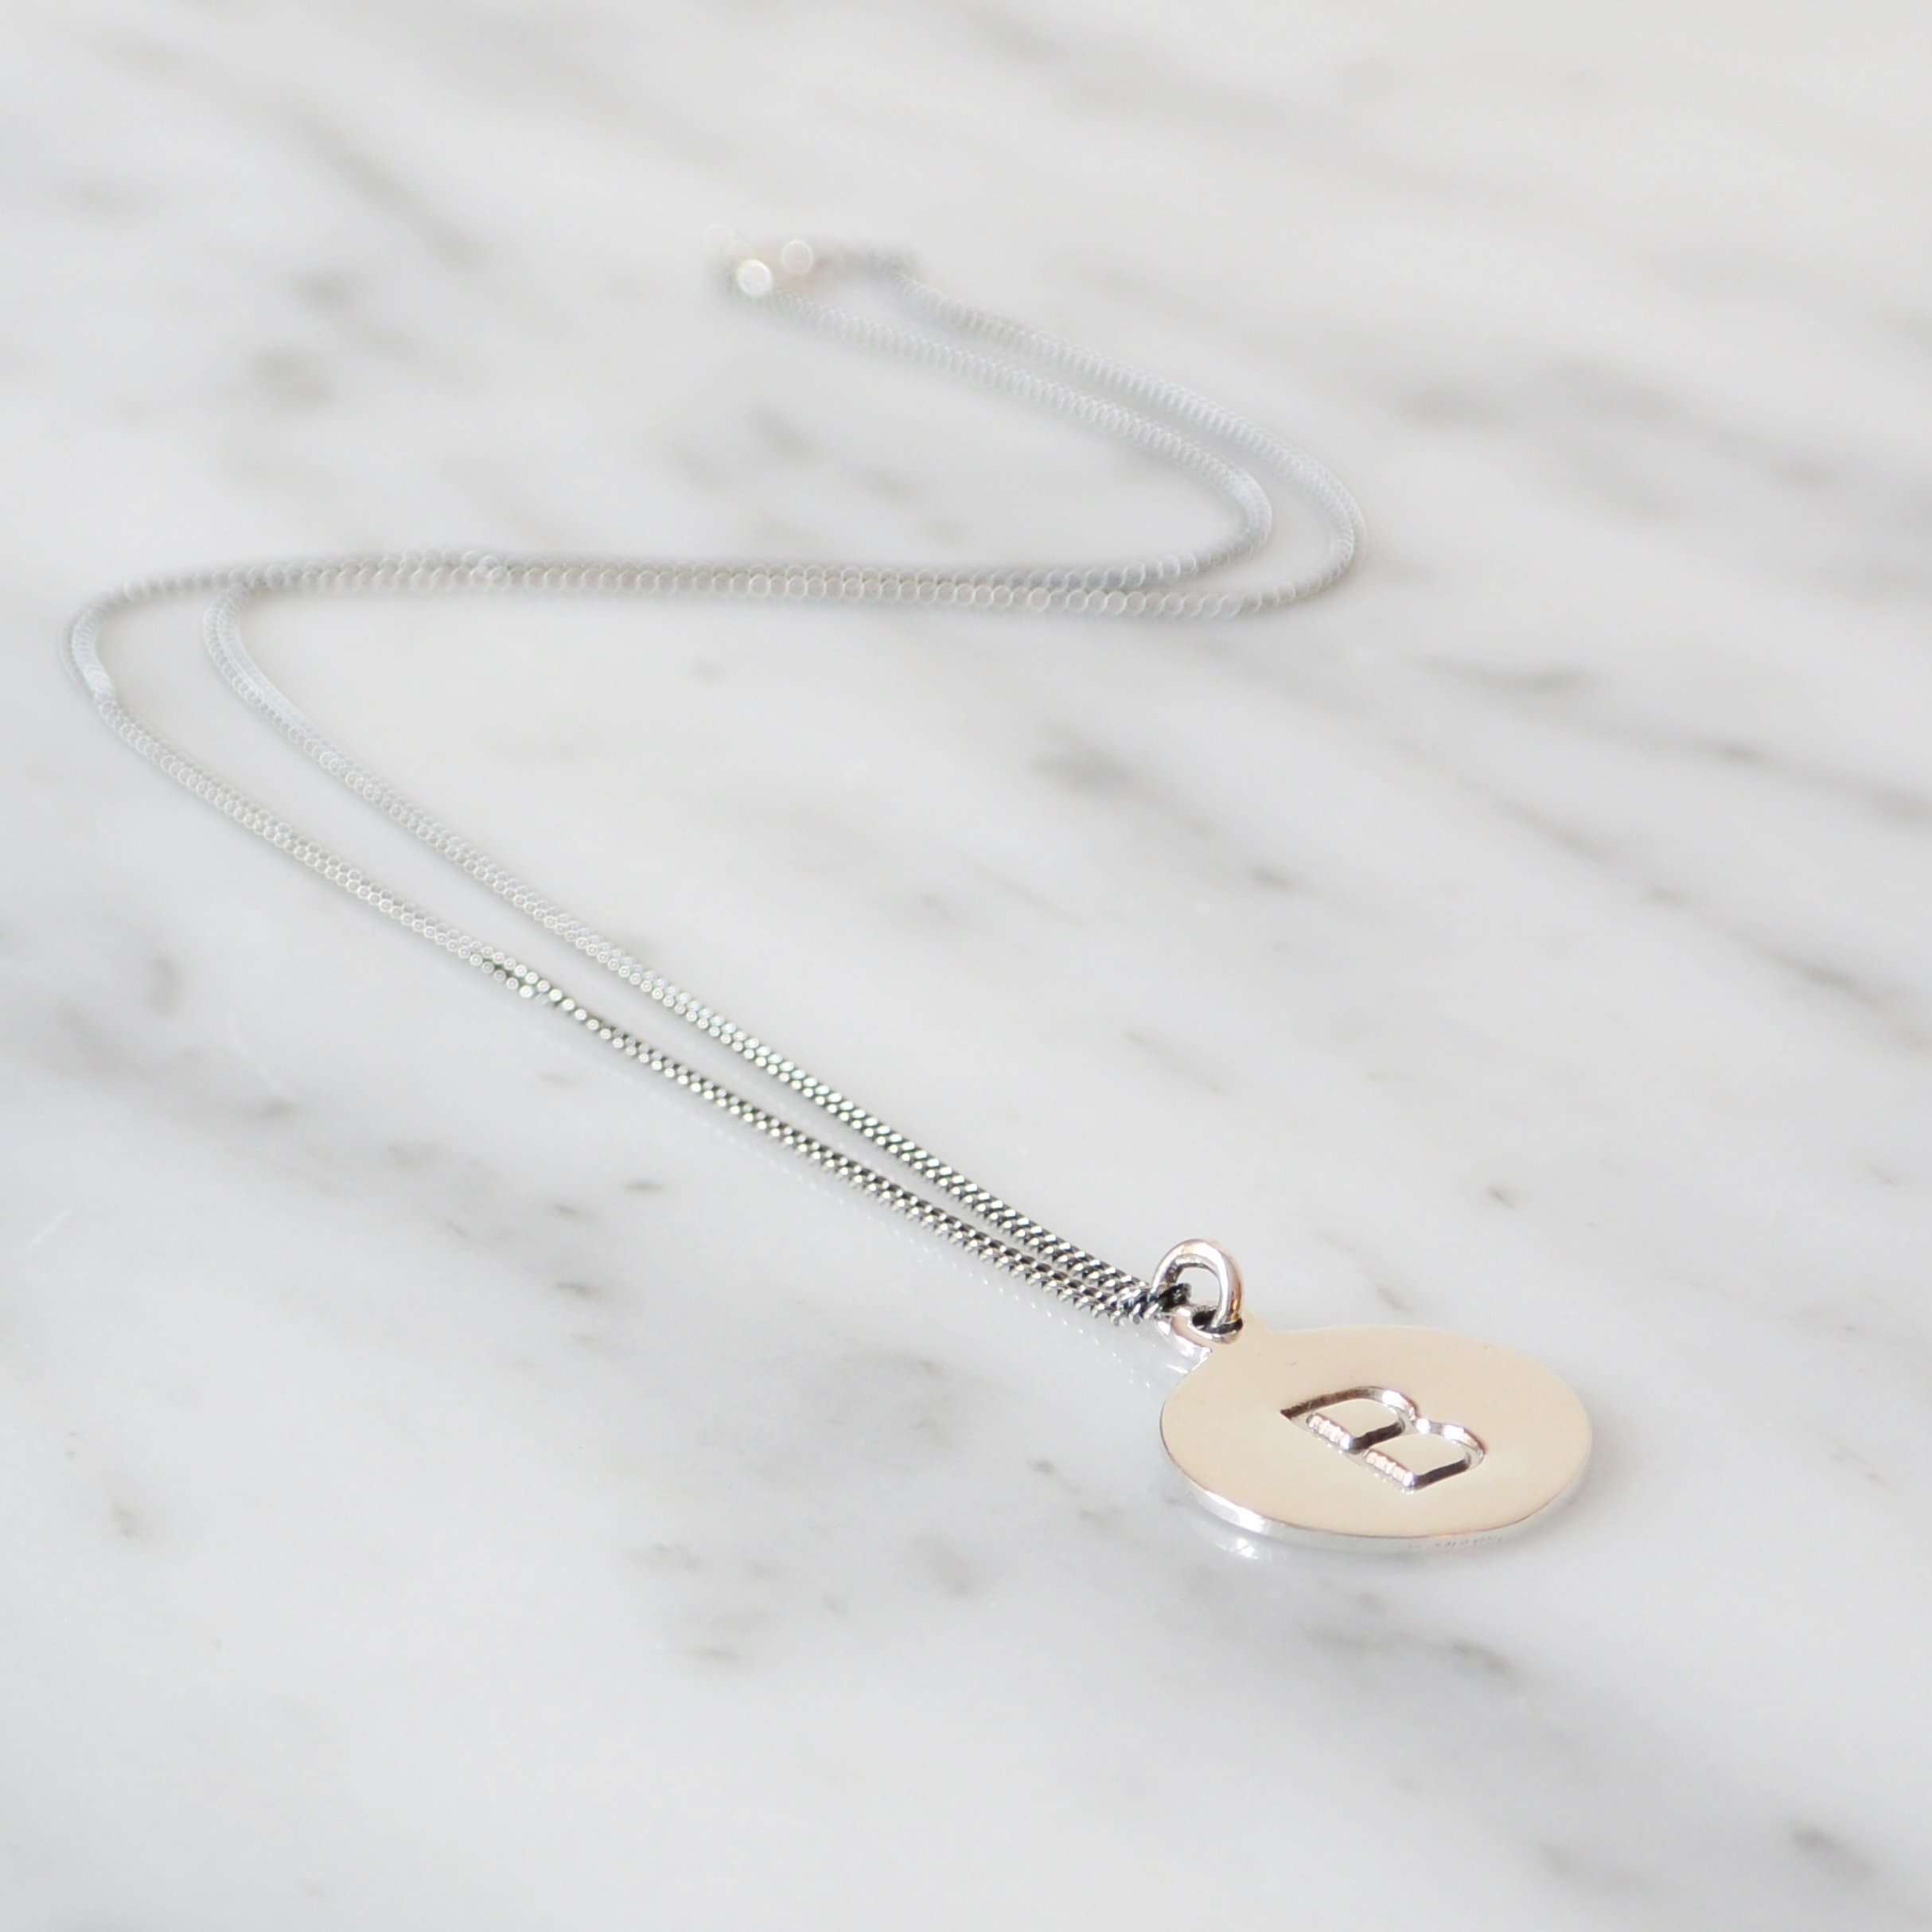 necklace notonthehighstreet jandsjewellery mini com j jewellery original s product initial letter by